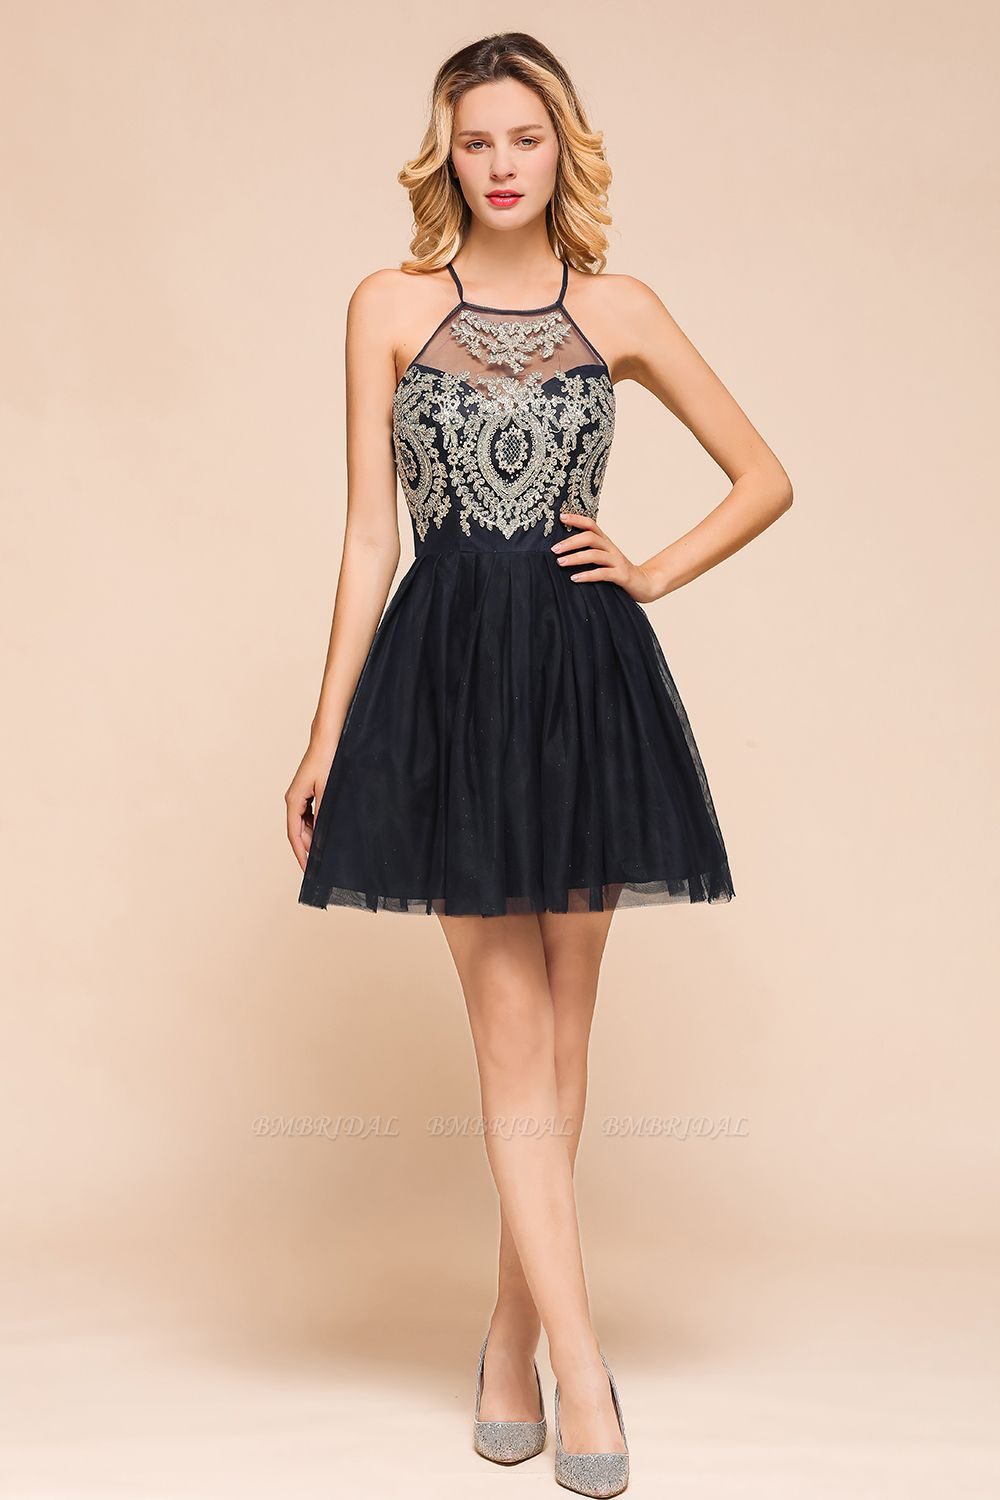 BMbridal Lovely Halter Tulle Short Prom Dress Lace Appliques Homecoming Dress Online